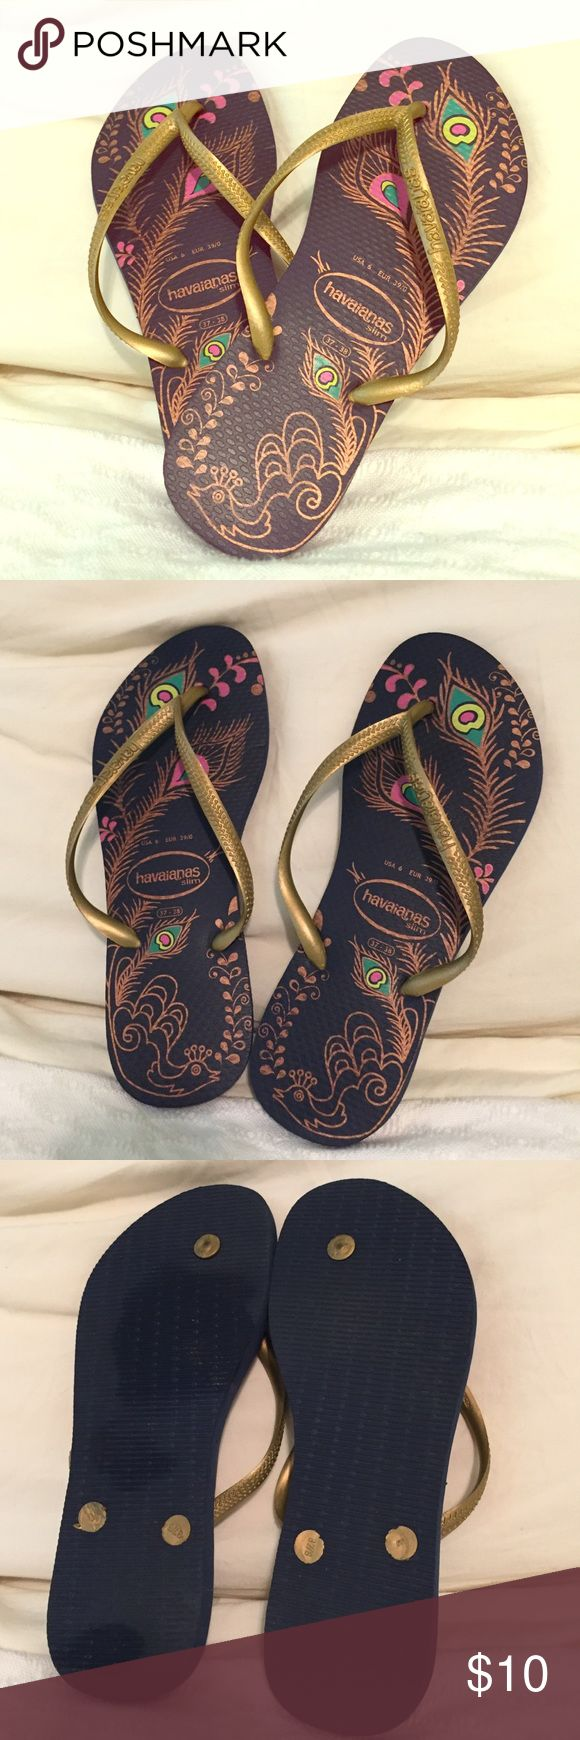 Like new navy print size 6 havaianas slim Excellent condition, unique print navy and gold havaianas slim. Havaianas Shoes Flats & Loafers